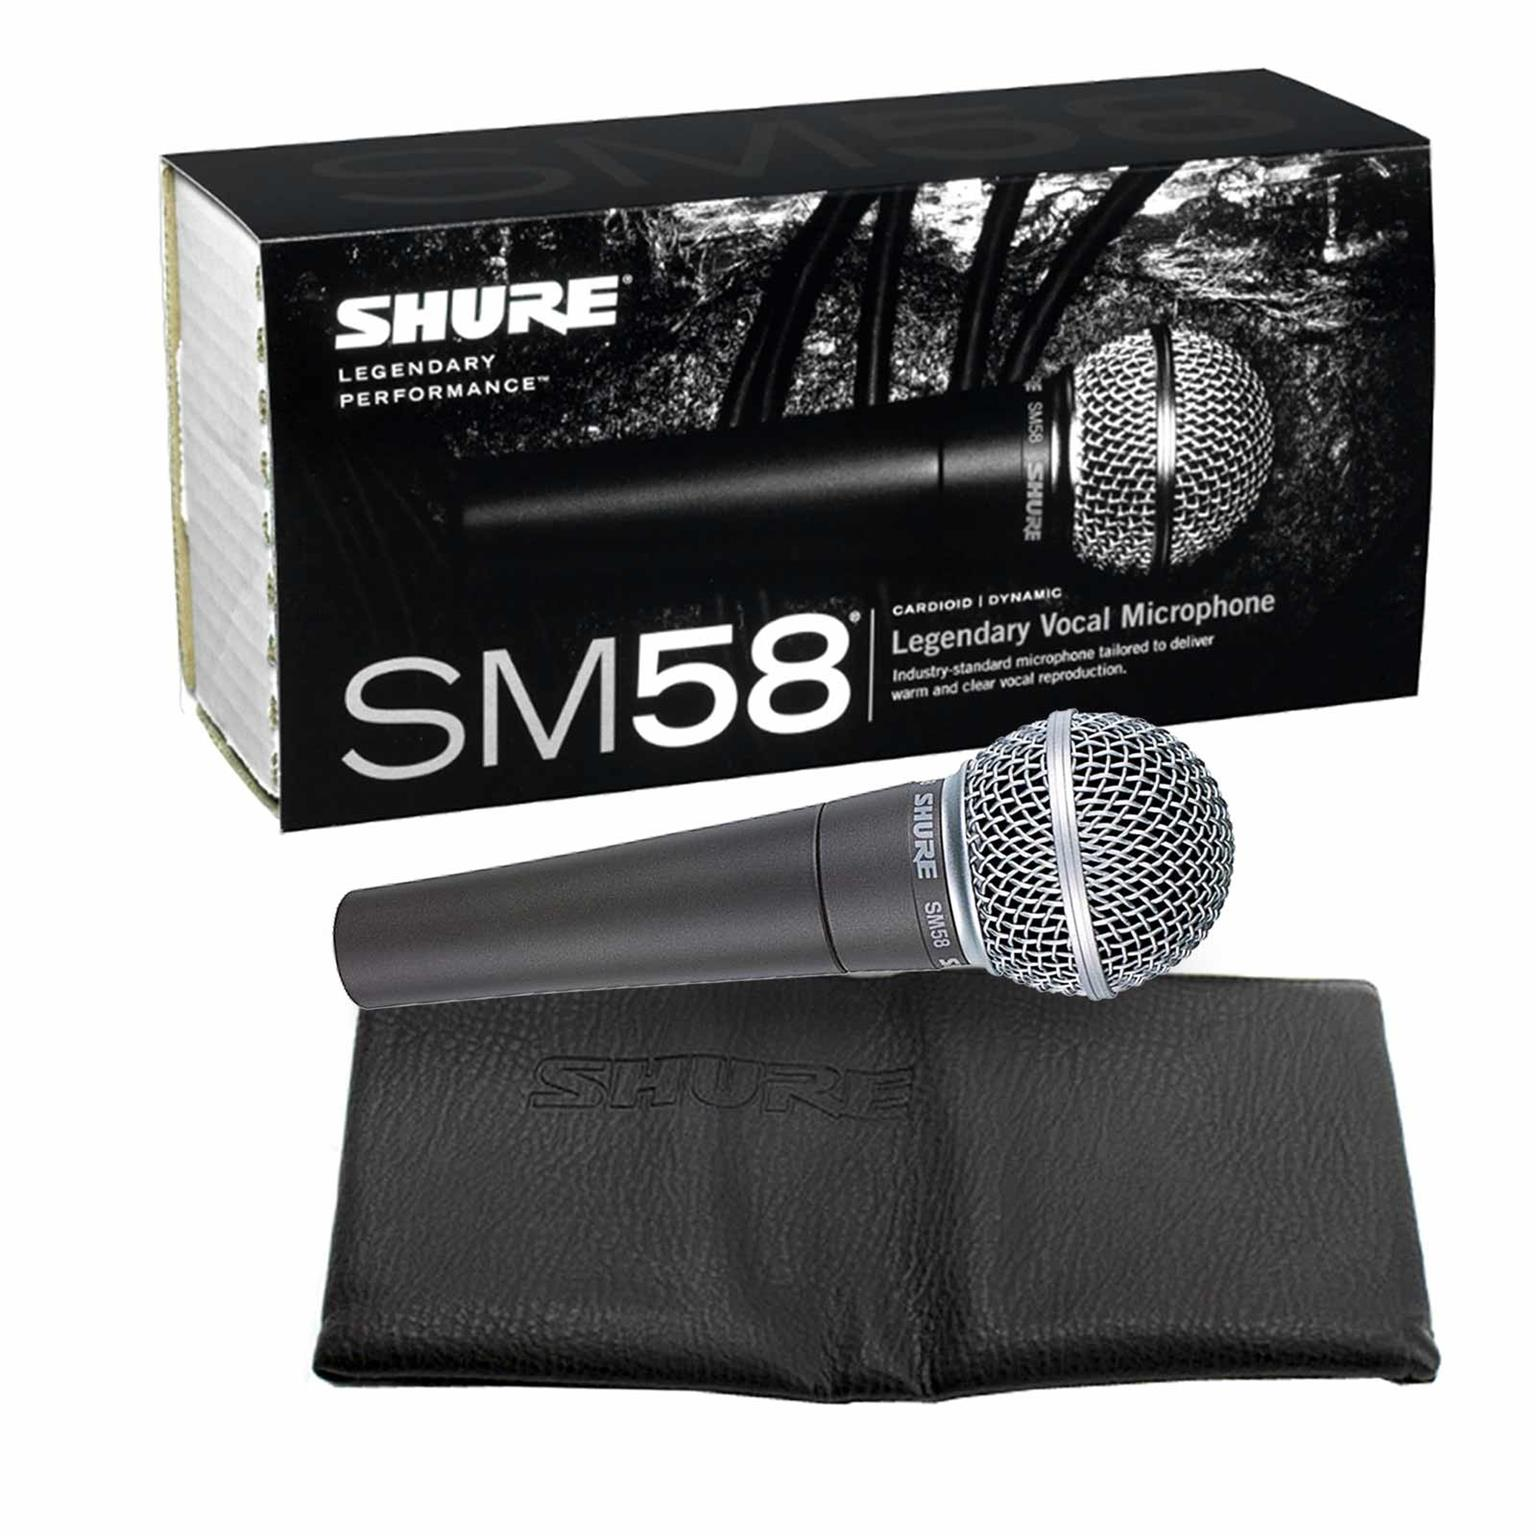 SHURE SM58,promotional price for April,2018. New Stock!